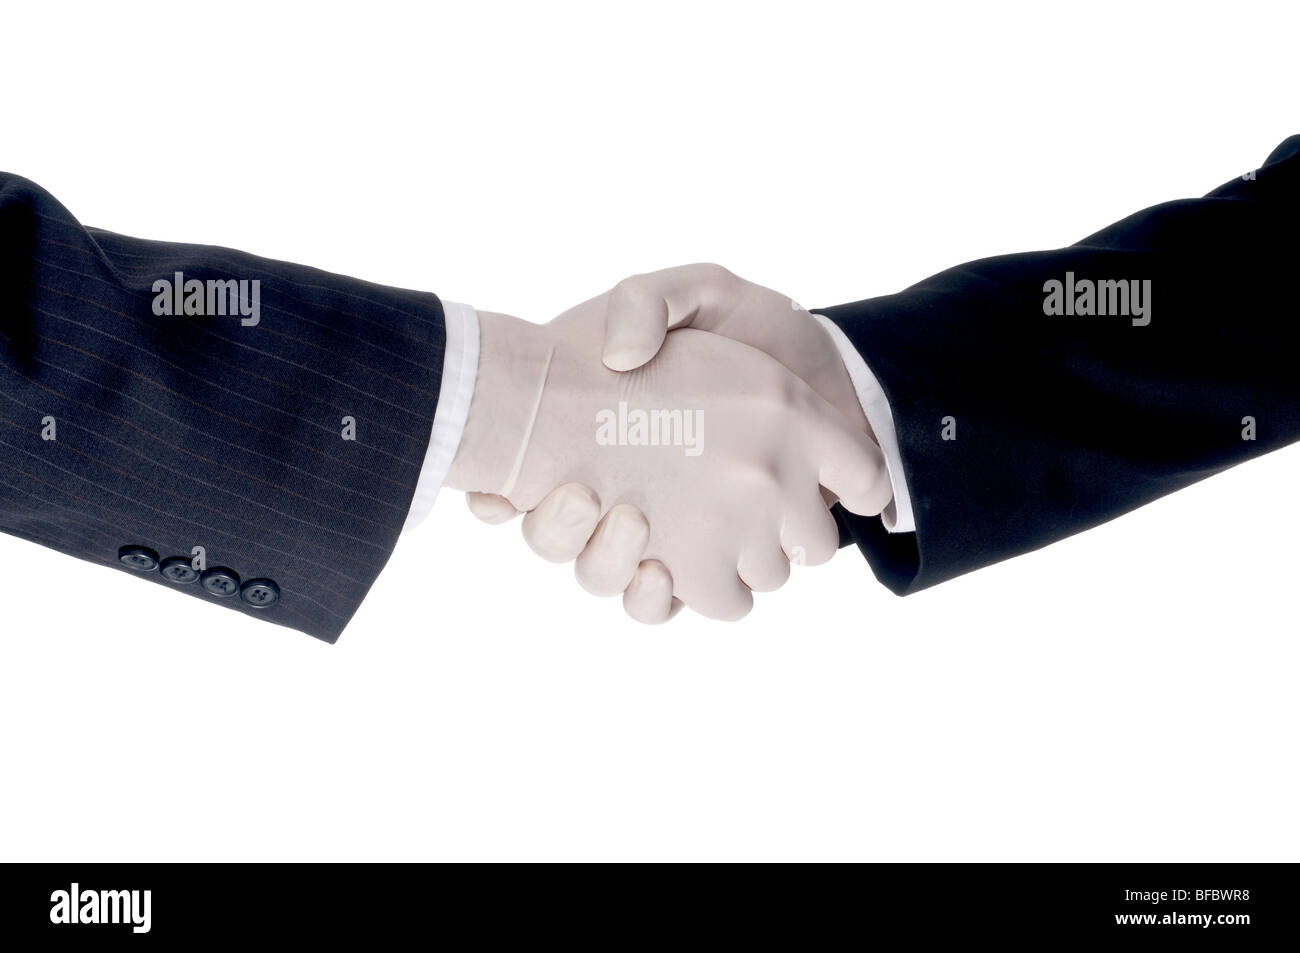 Business men shaking hands wearing gloves to protect against flu virus - Stock Image